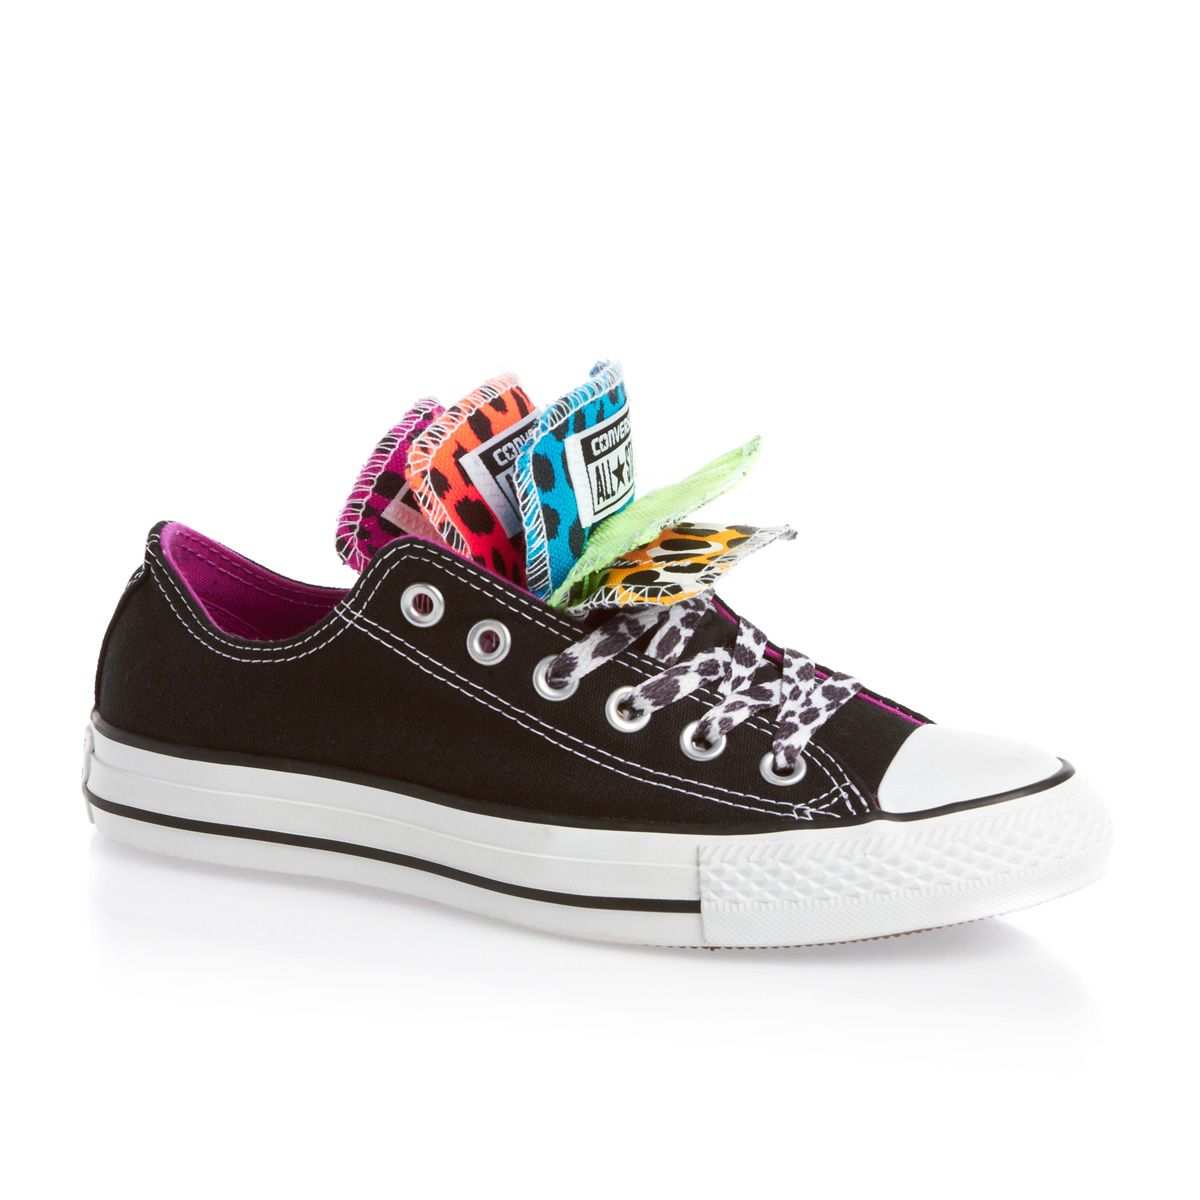 converse shoes girls wearing in sad man s tongue